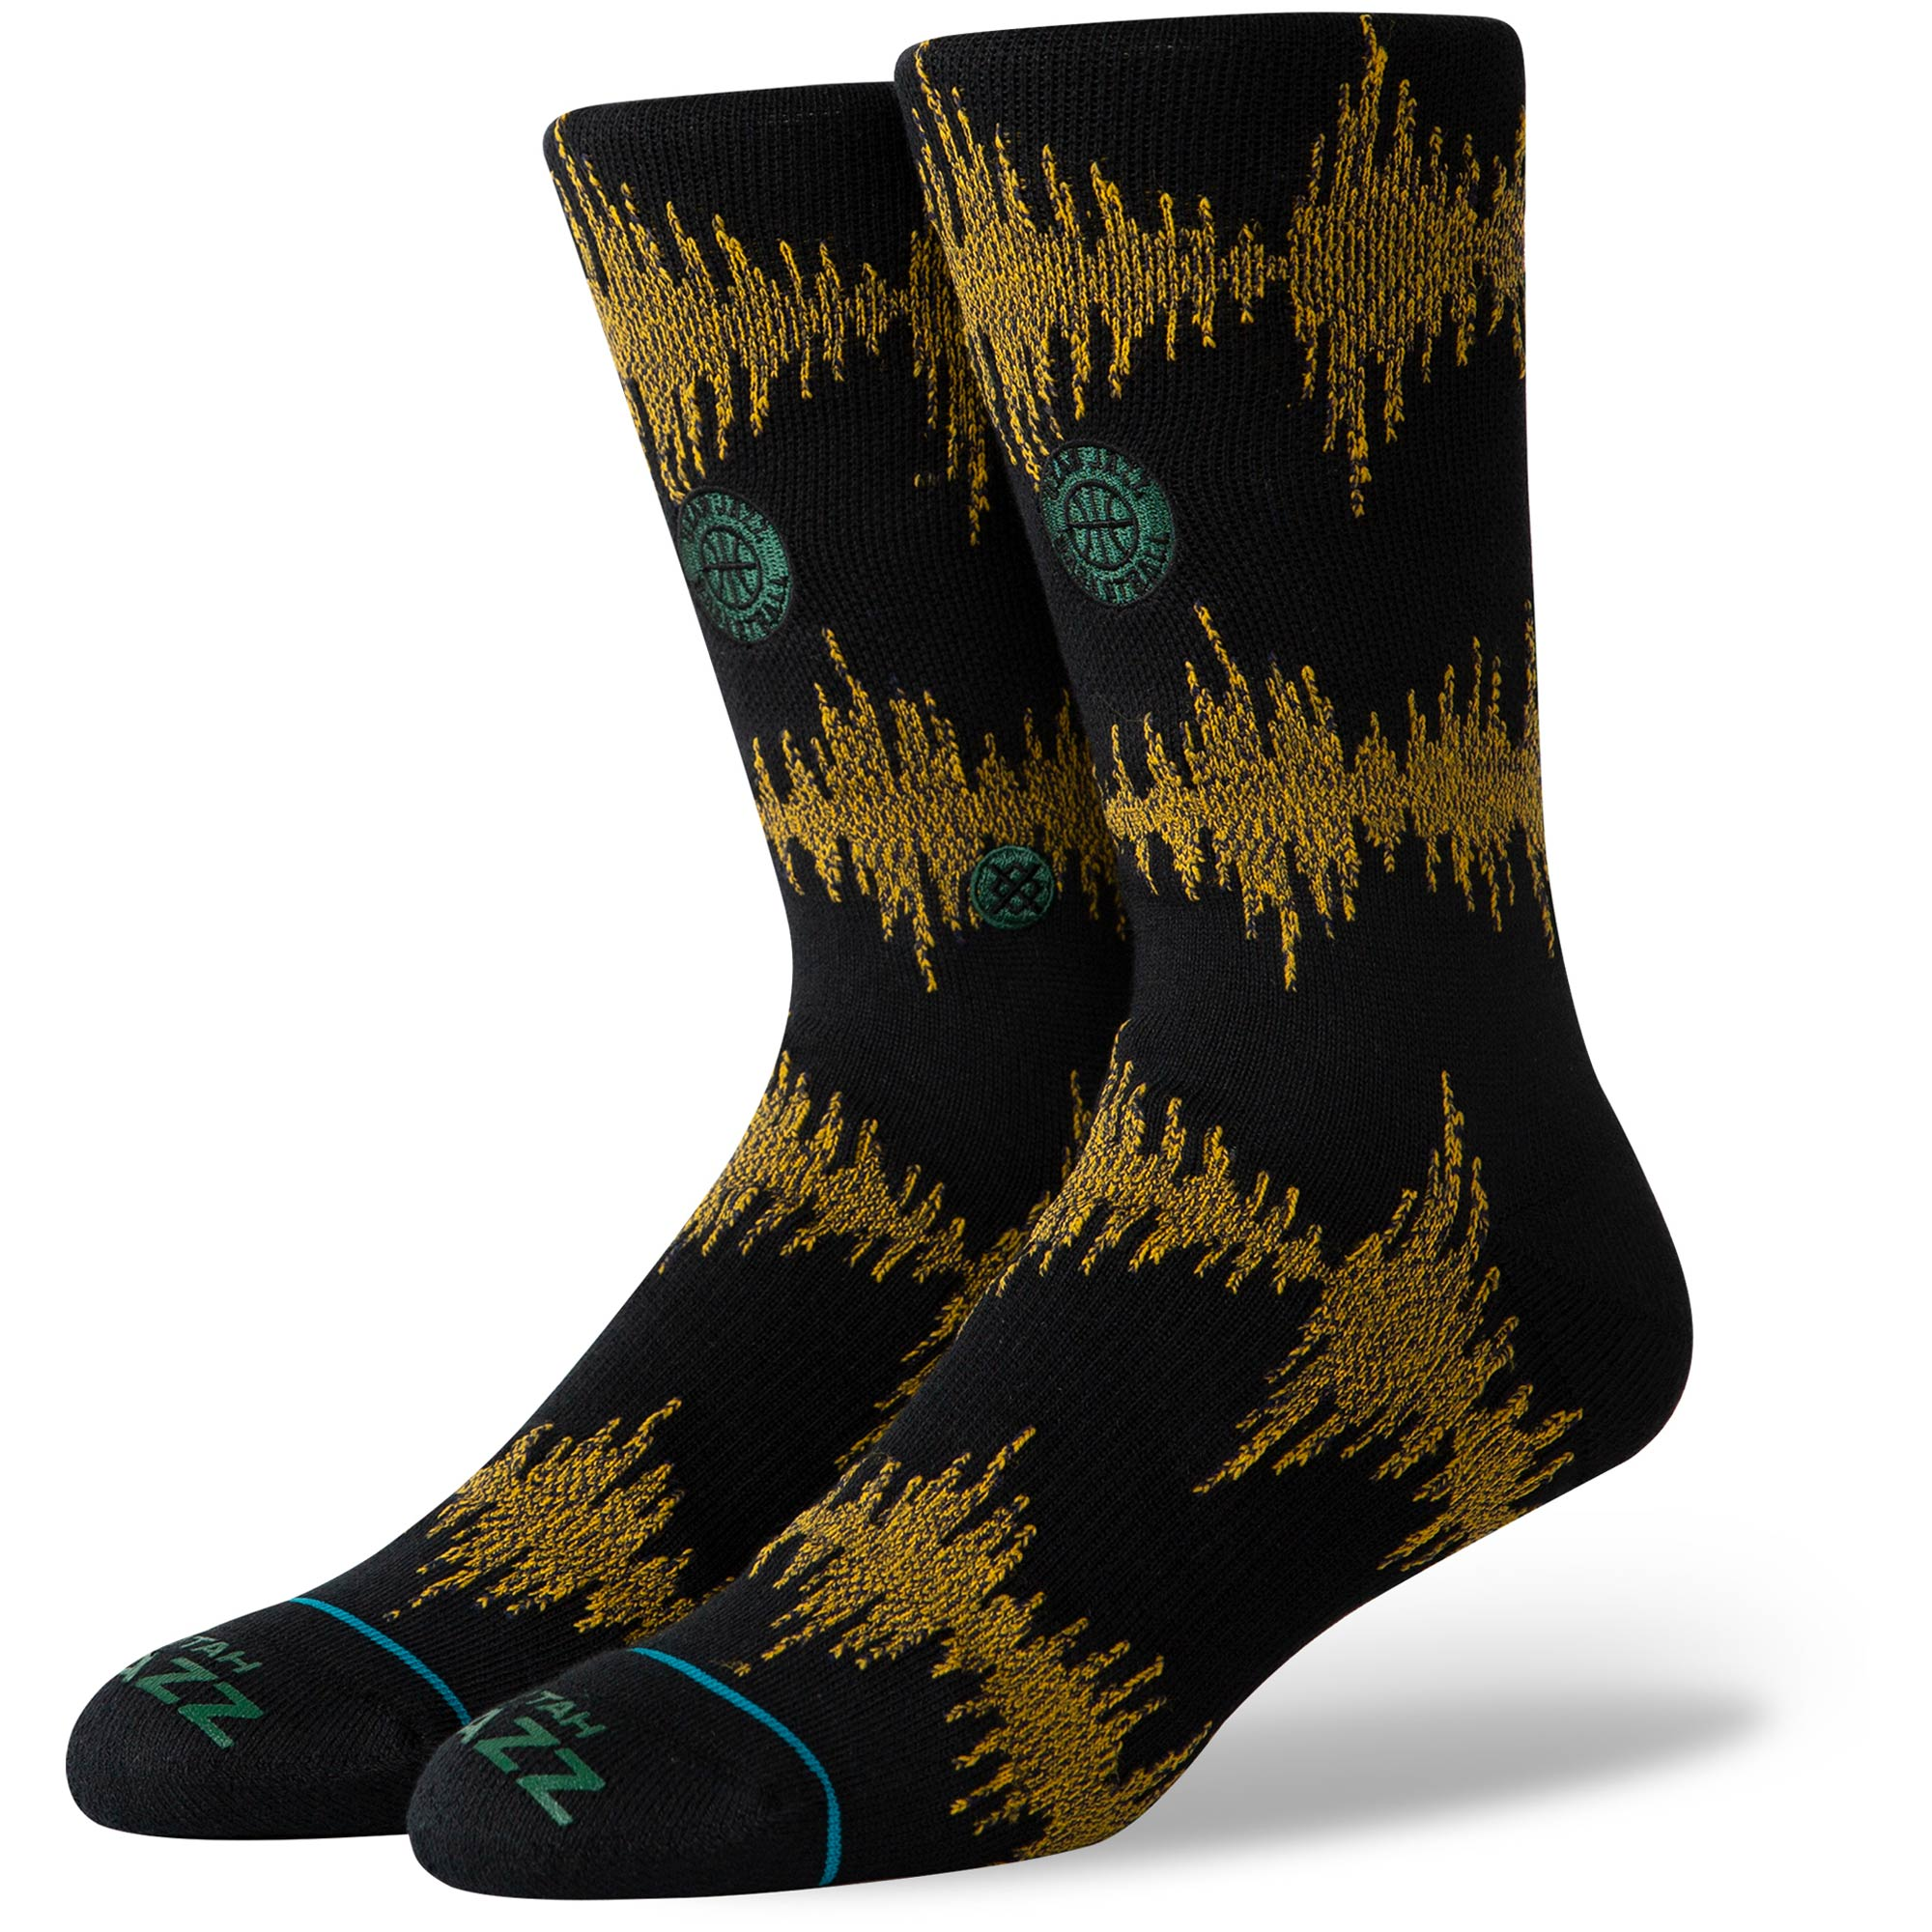 Utah Jazz Stance 99 Wave Crew Socks